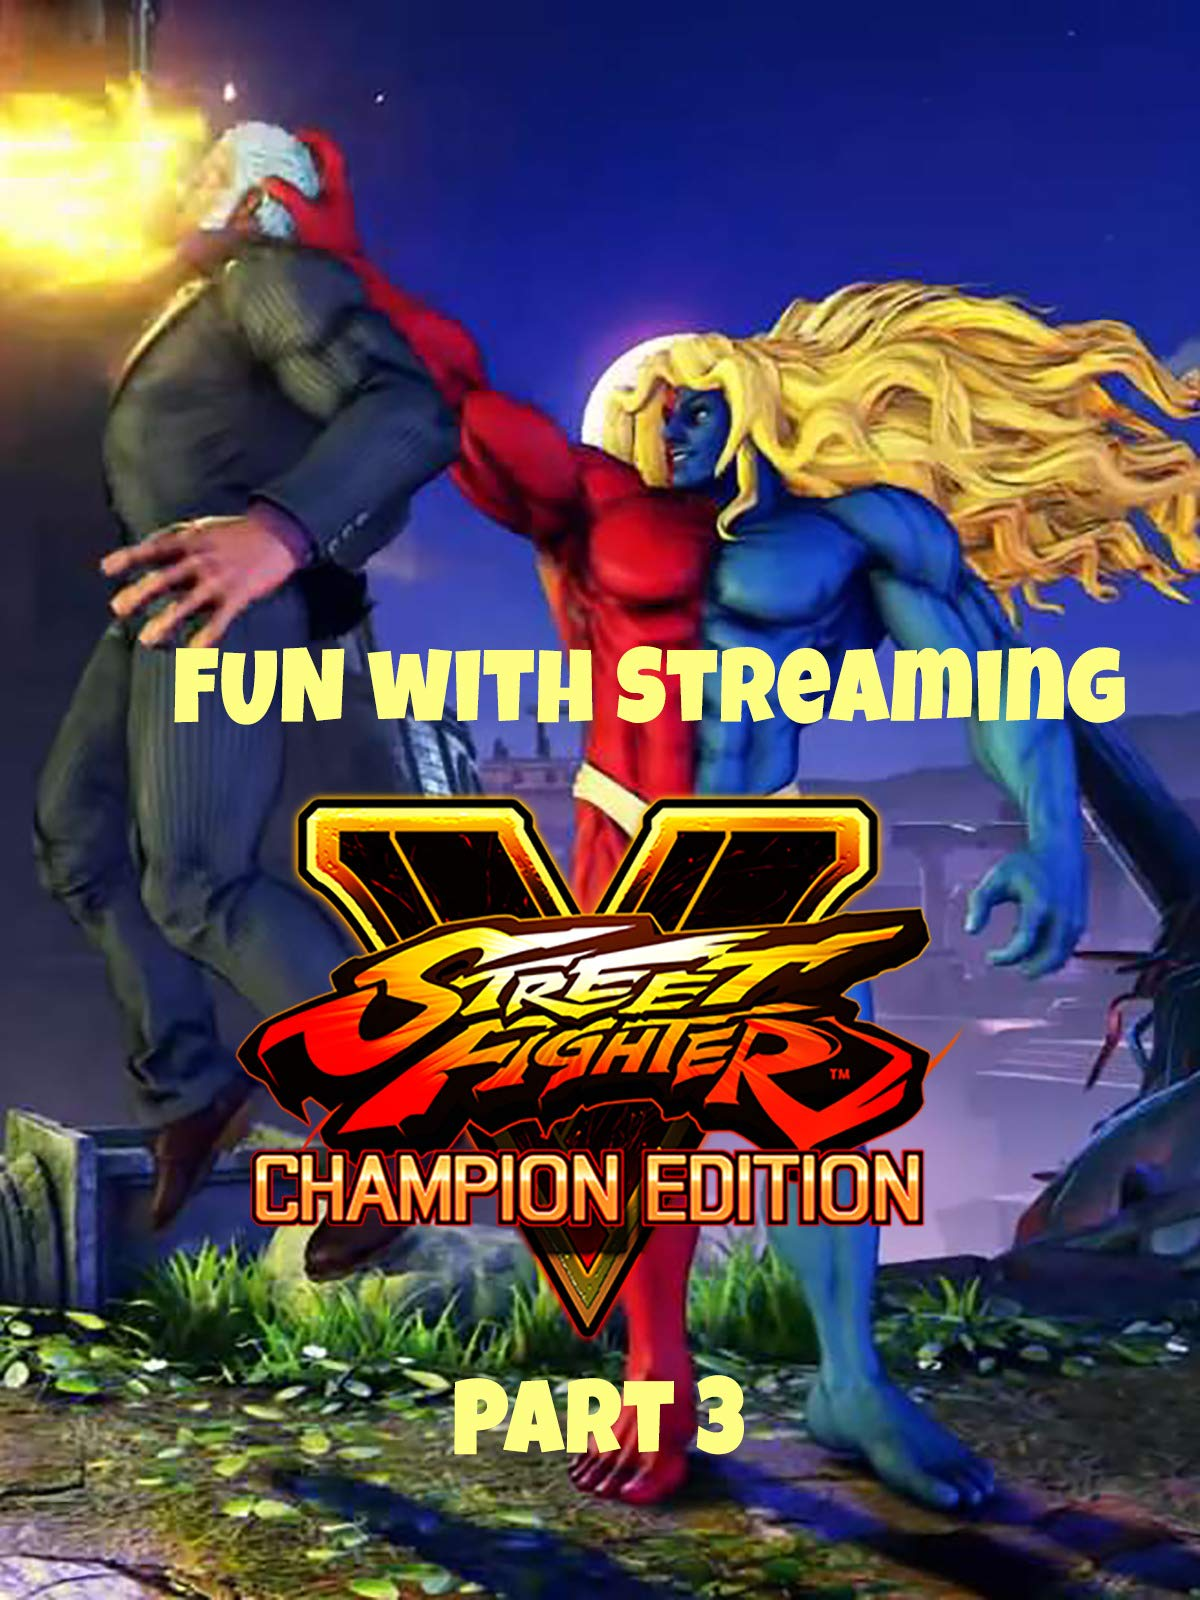 Clip: Fun with Streaming Street Fighter V Champion Edition Part 3 on Amazon Prime Video UK